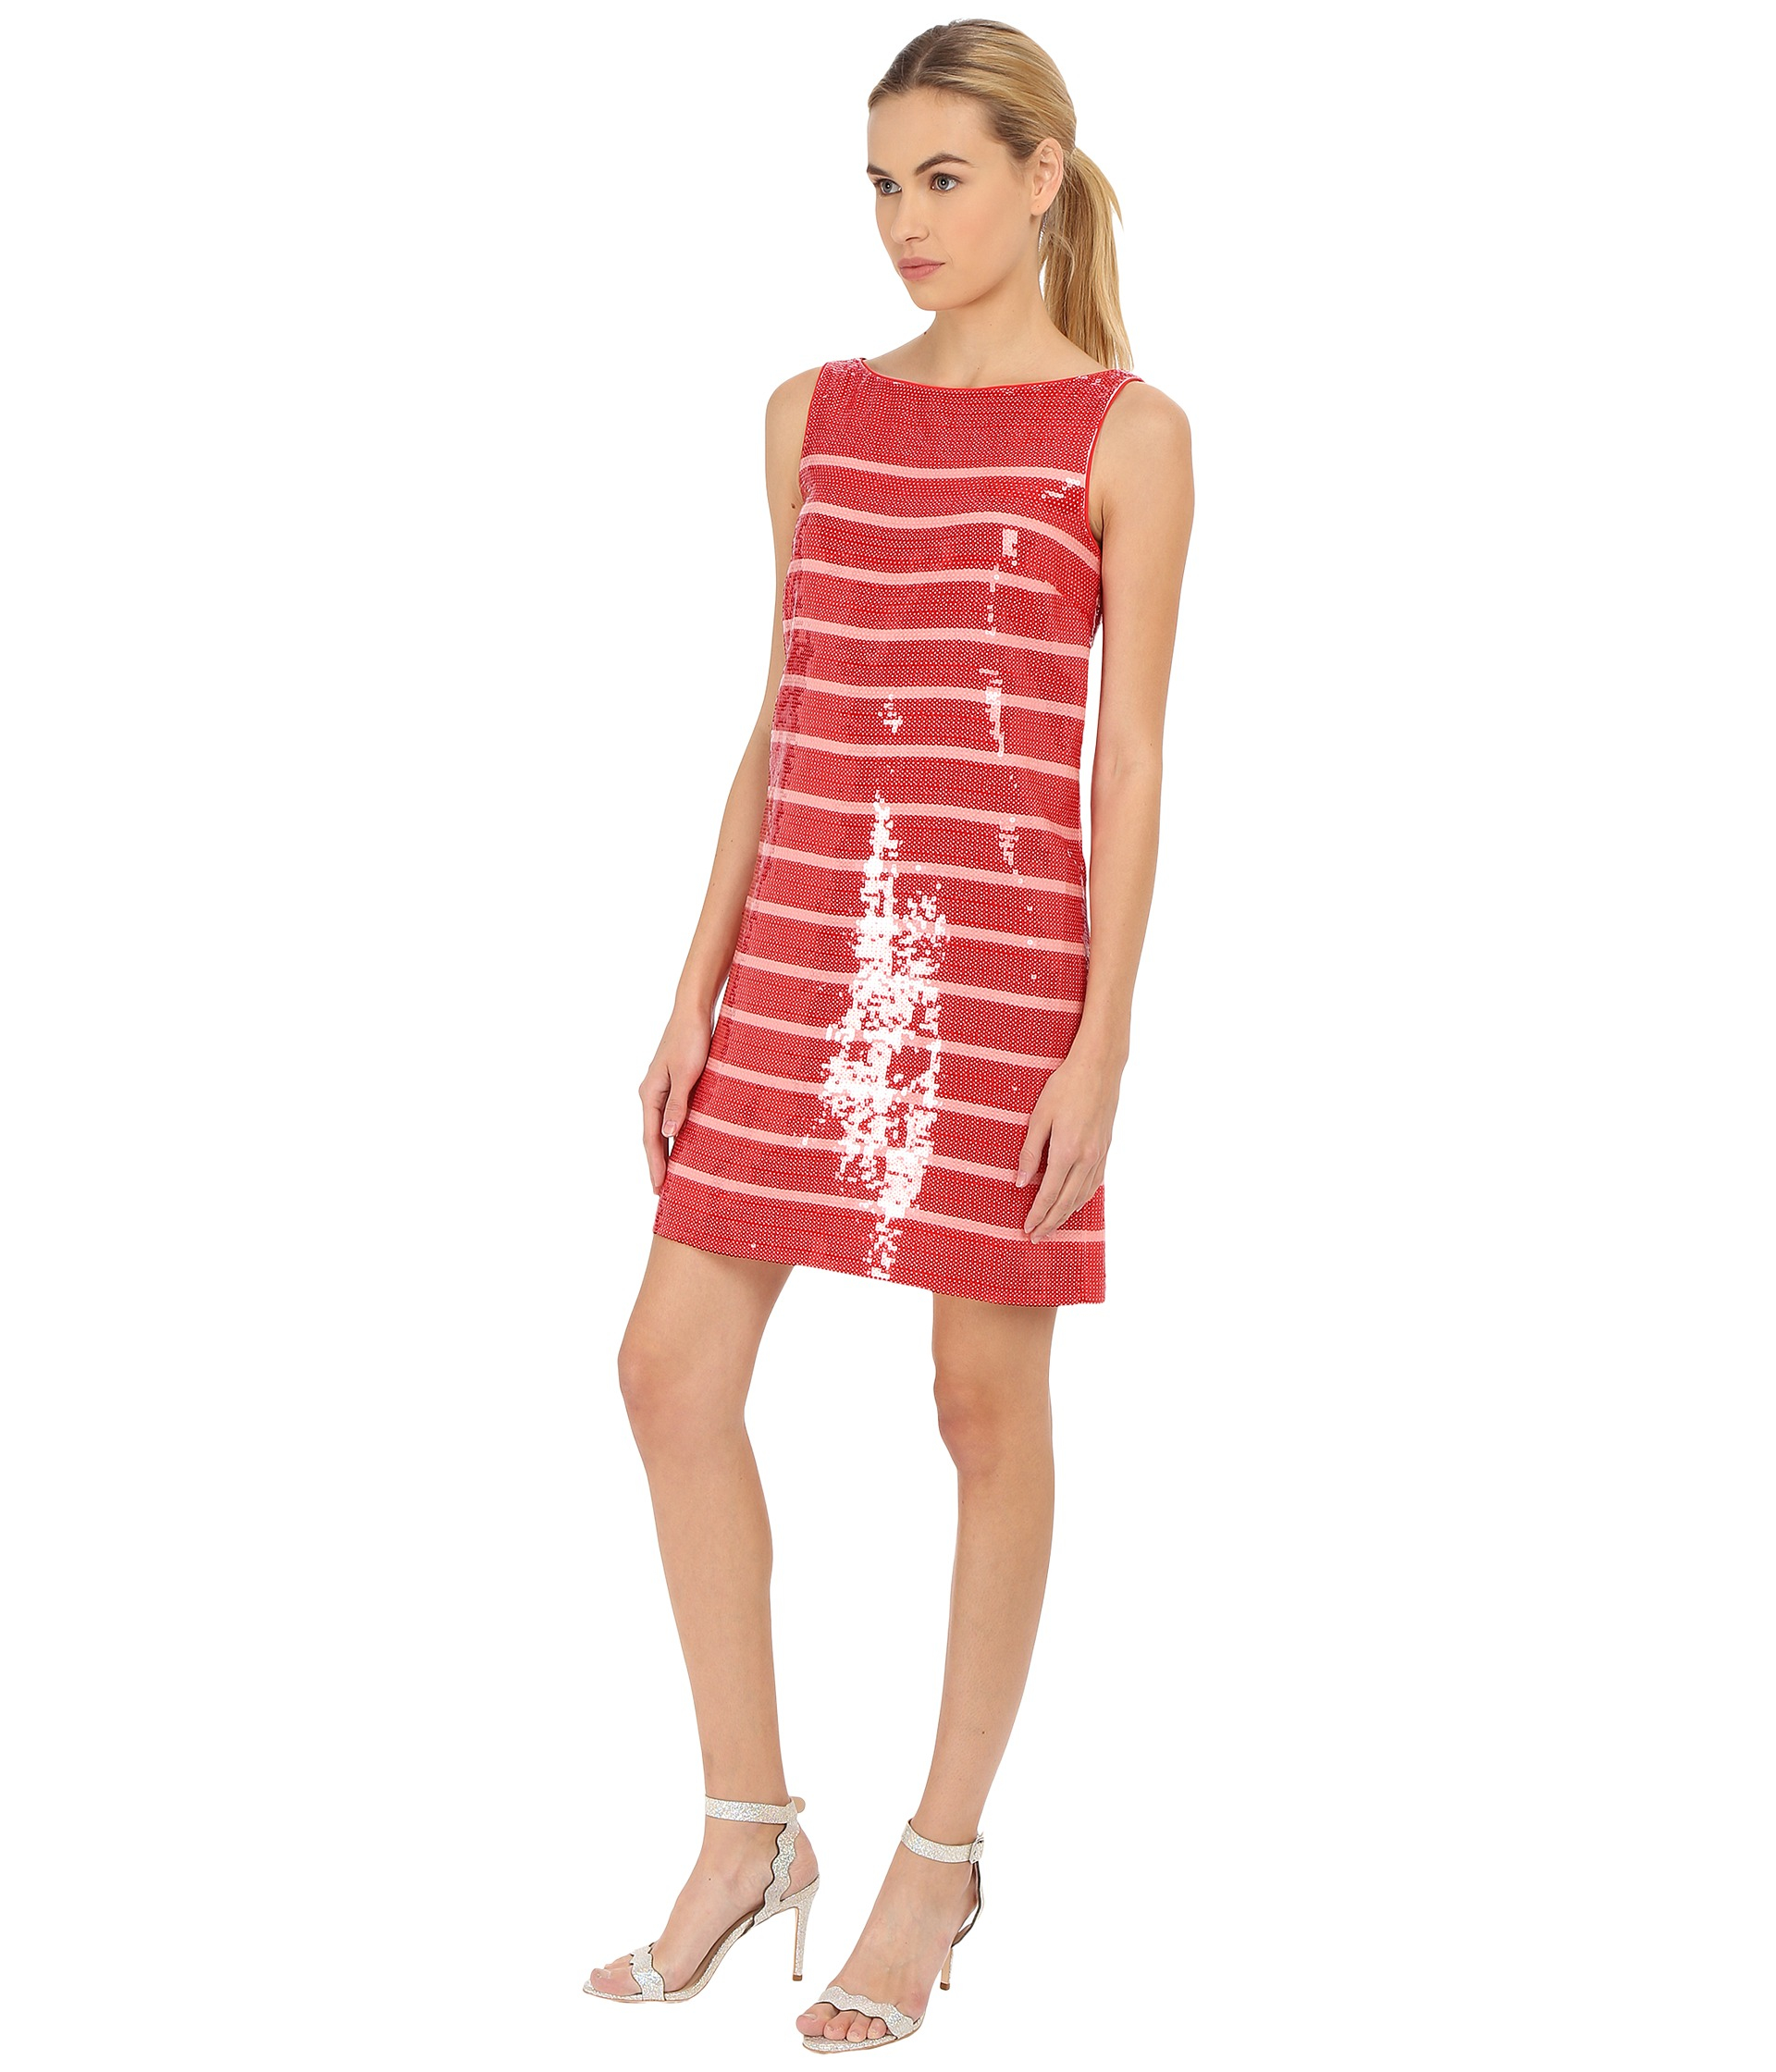 7916c515c5 Lyst - Kate Spade Sleeveless Sequin Stripe Dress in Red